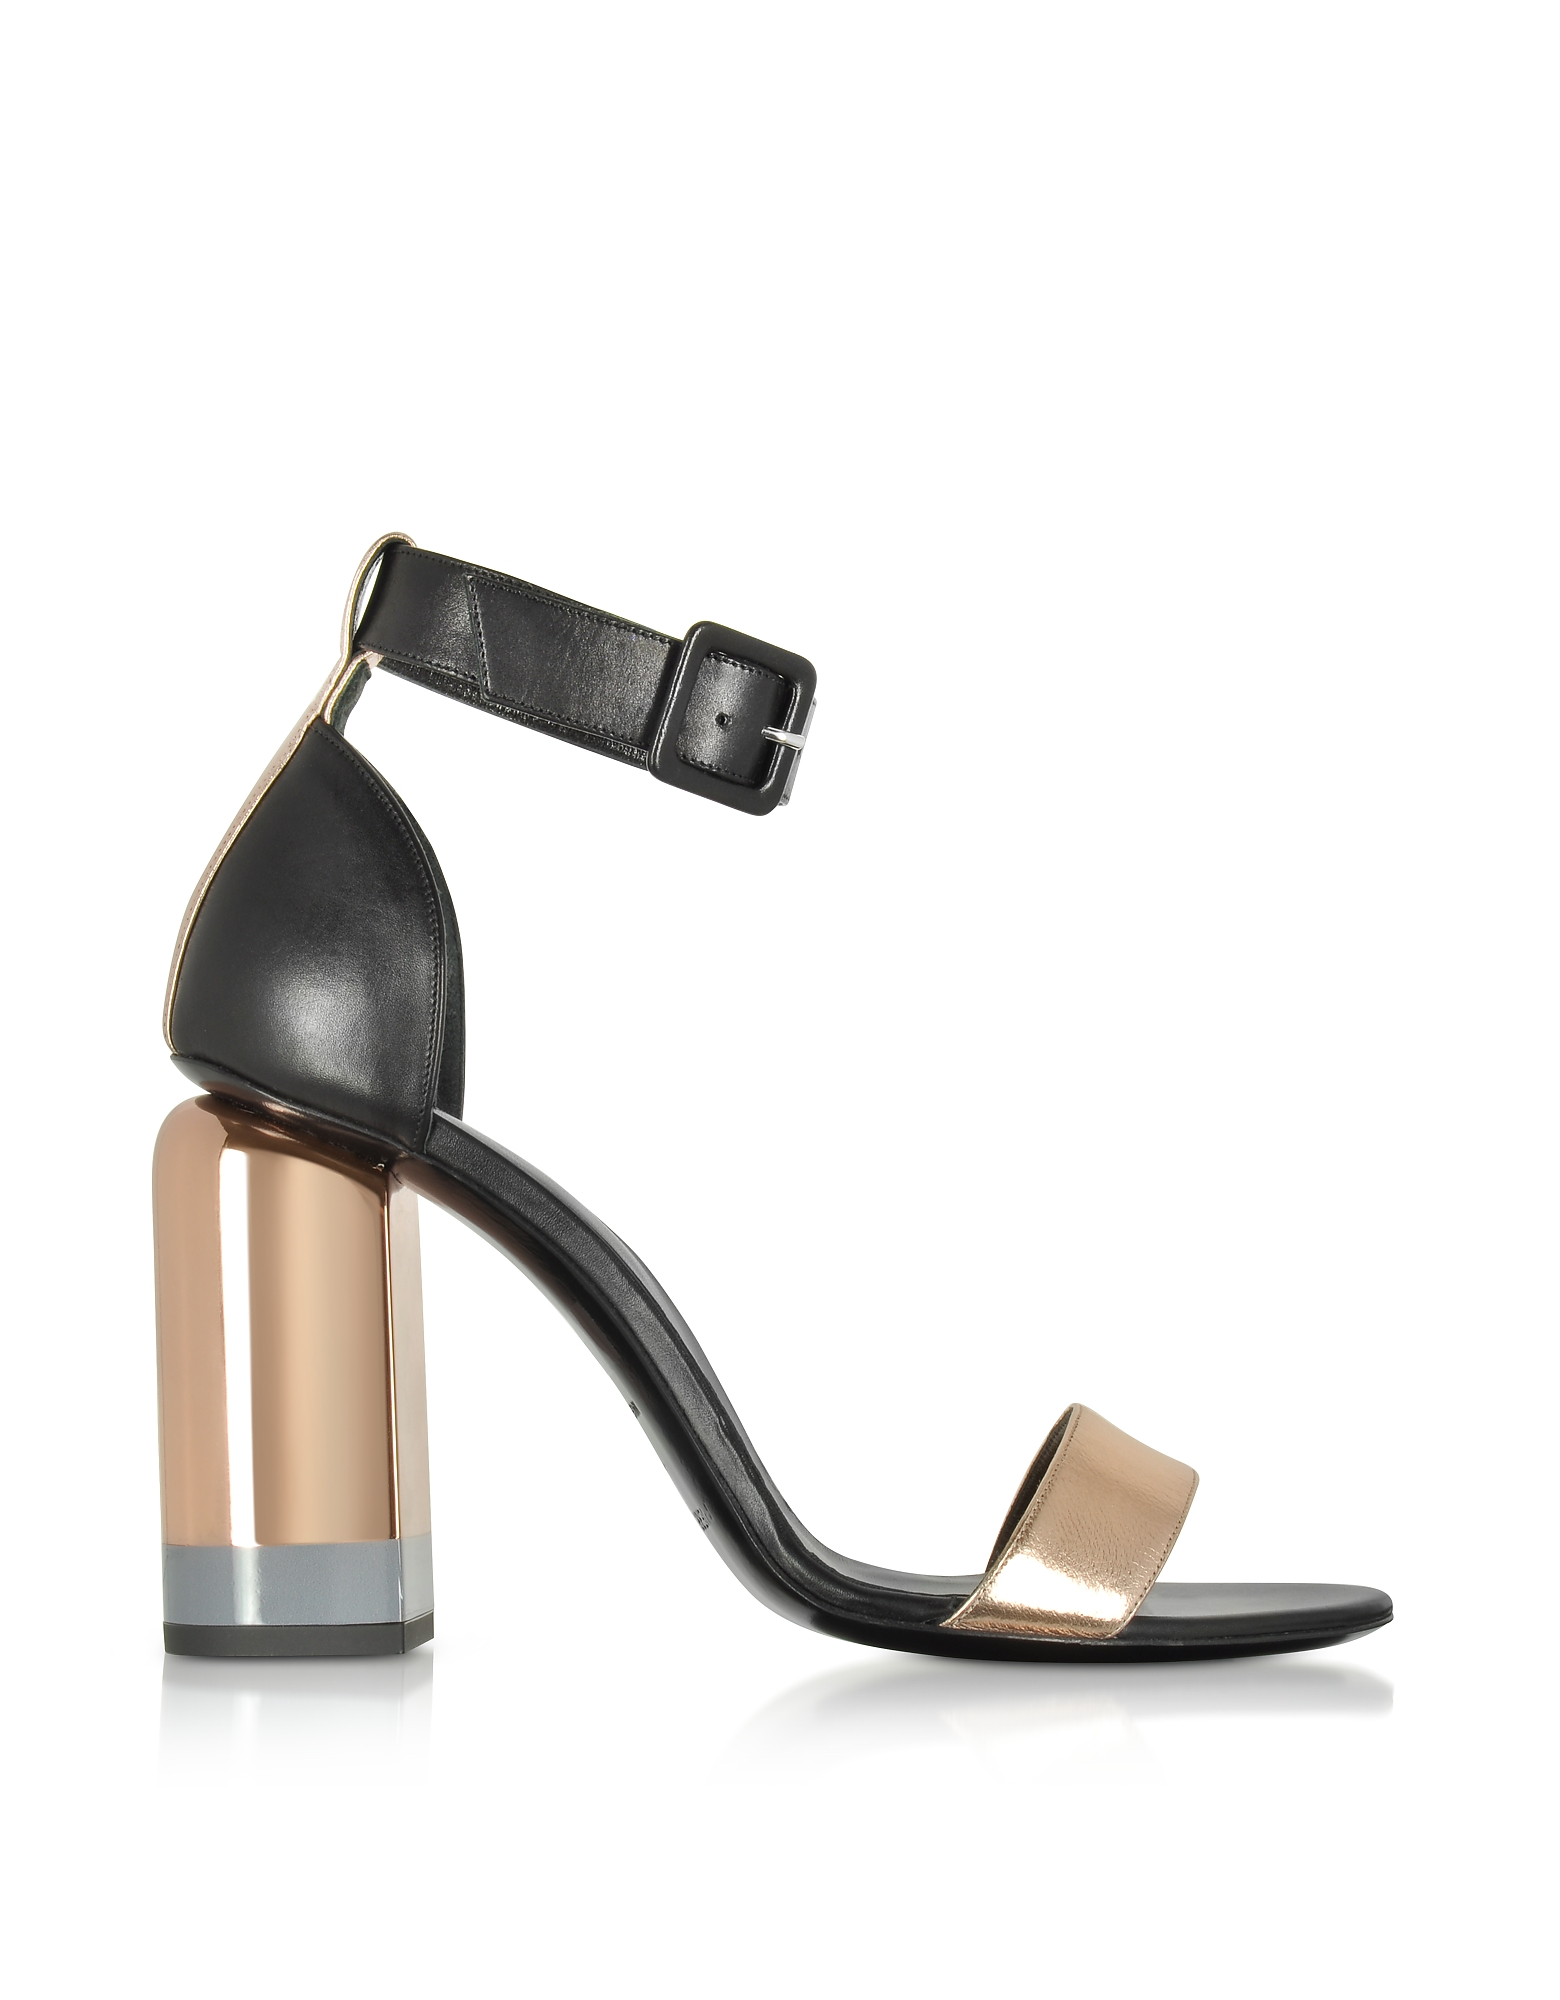 Pierre Hardy Shoes, Metallic Pink and Black Leather Heel Sandals